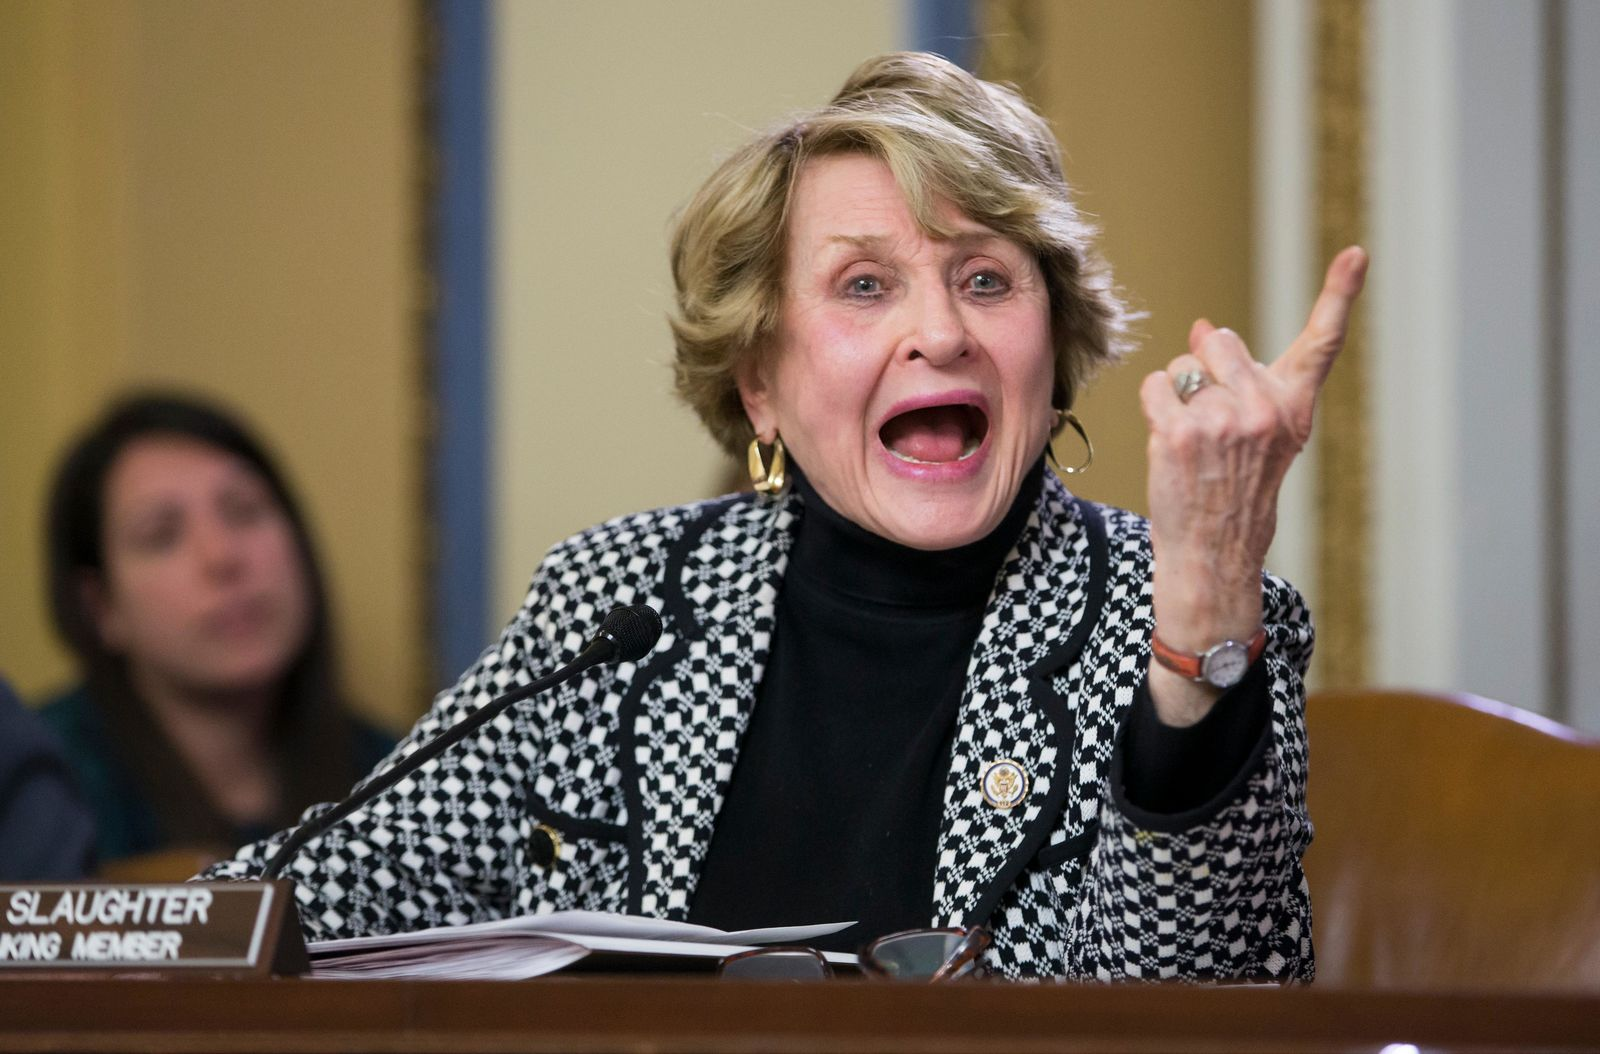 FILE- In this Jan. 5, 2016 file photo, Rep. Louise Slaughter, D-N.Y., the top Democrat on the House Rules Committee, voices her objections on Capitol Hill in Washington, as the GOP-led panel prepares legislation that would repeal President Barack Oabma's signature health care law. Slaughter, who passed away on March on March 16, 2018, is among 10 people who will be inducted into the National Women's Hall of Fame during a ceremony on Saturday, Sept. 14, 2019. (AP Photo/J. Scott Applewhite, File)